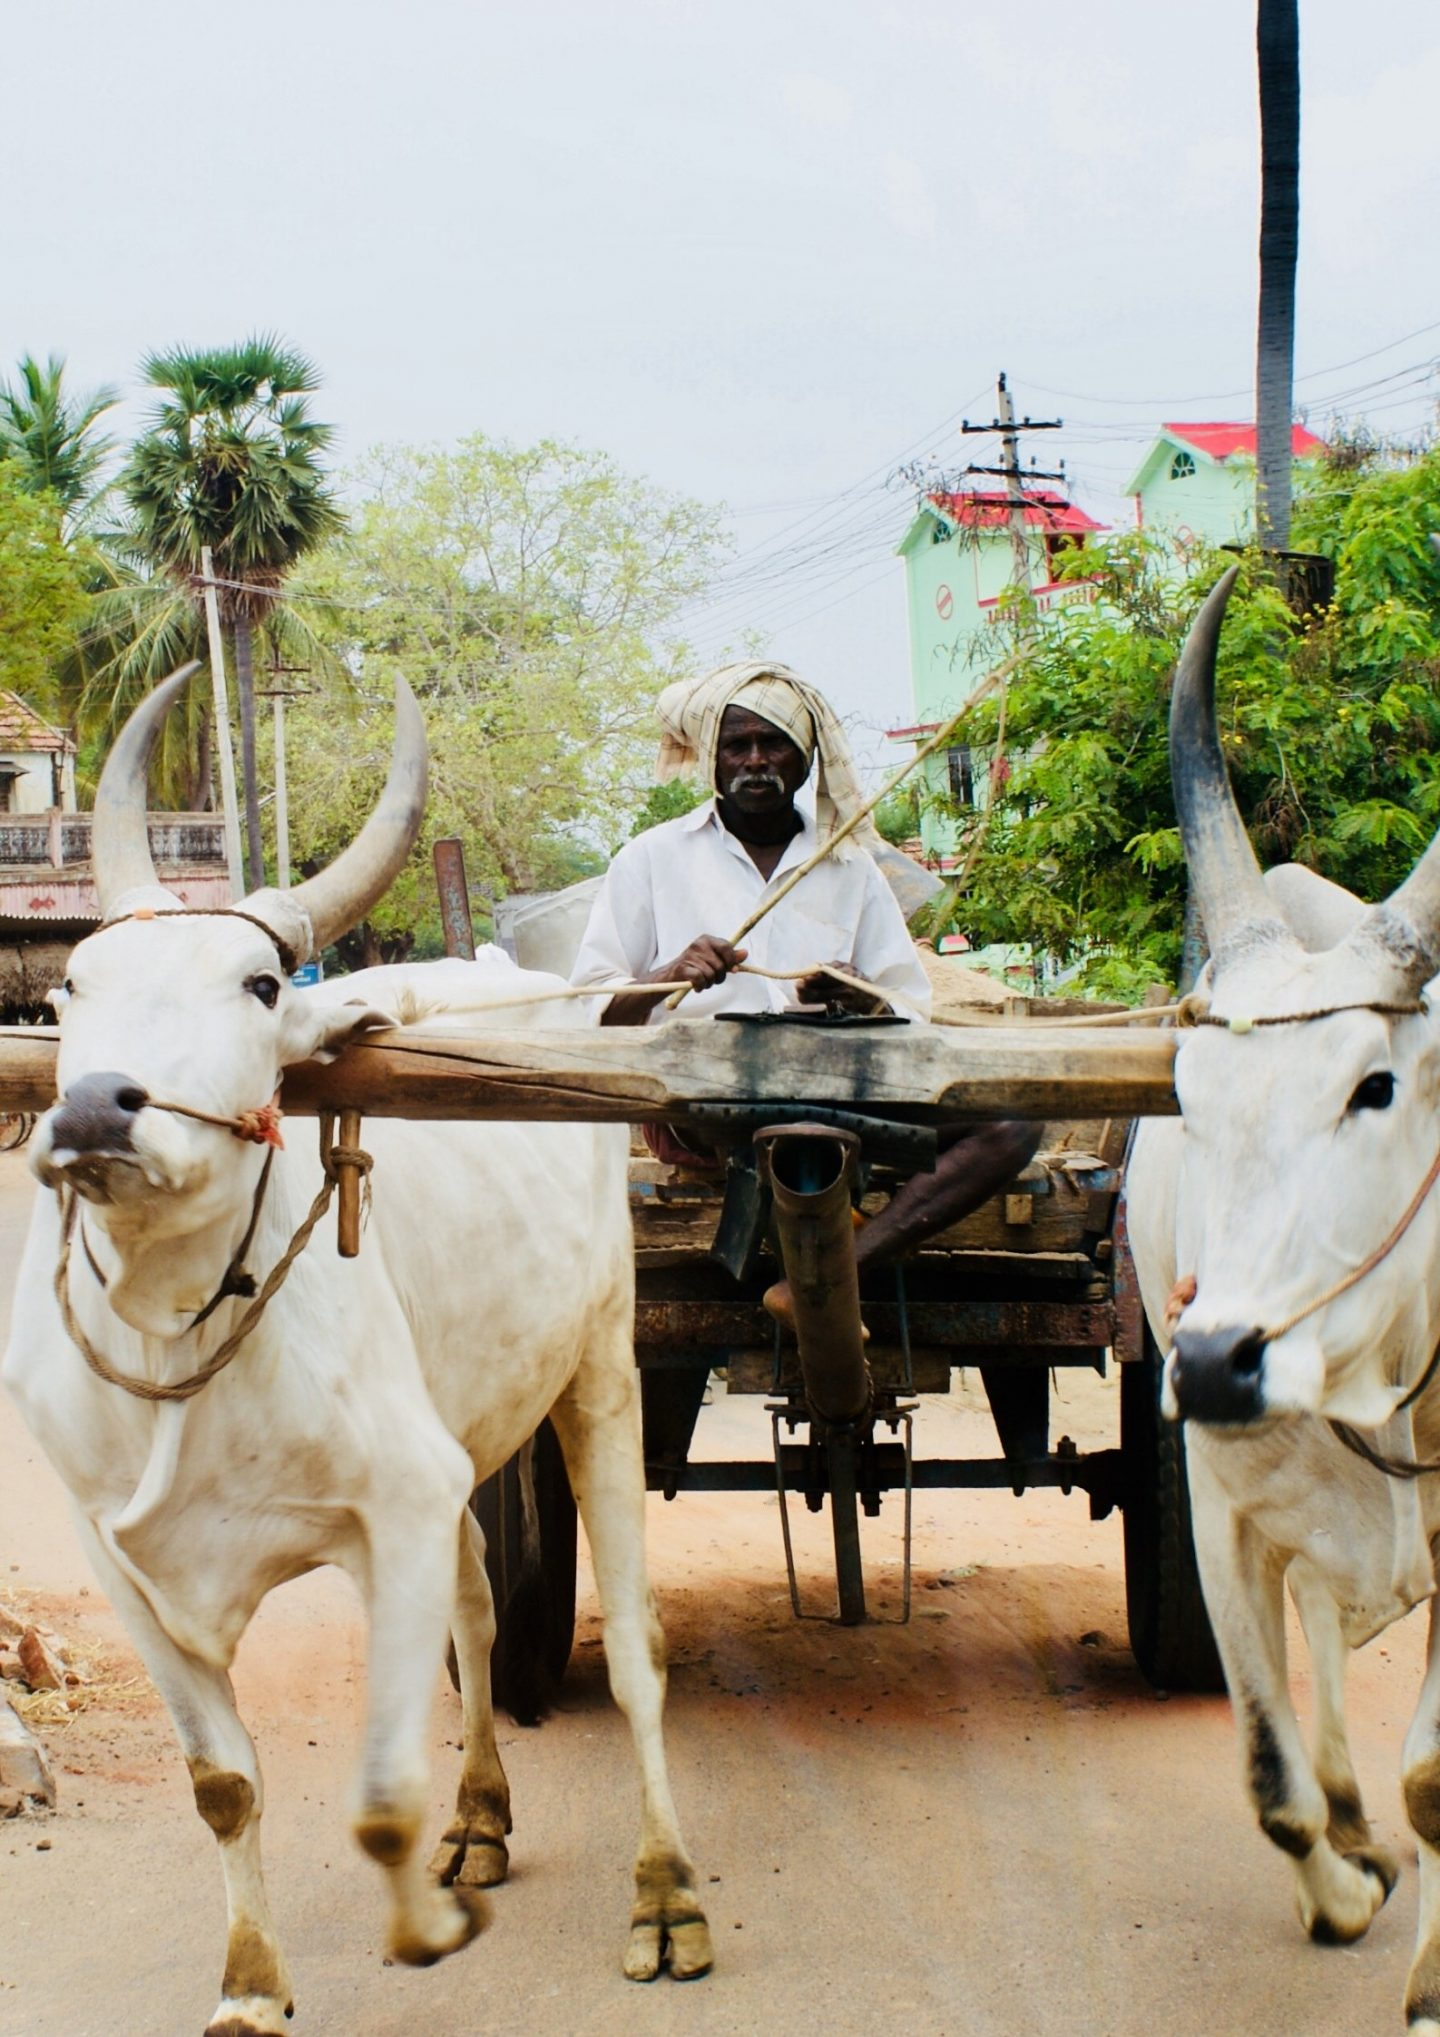 INCREDIBLE INDIA: A ROAD-TRIP IN THE SOUTHERN STATES